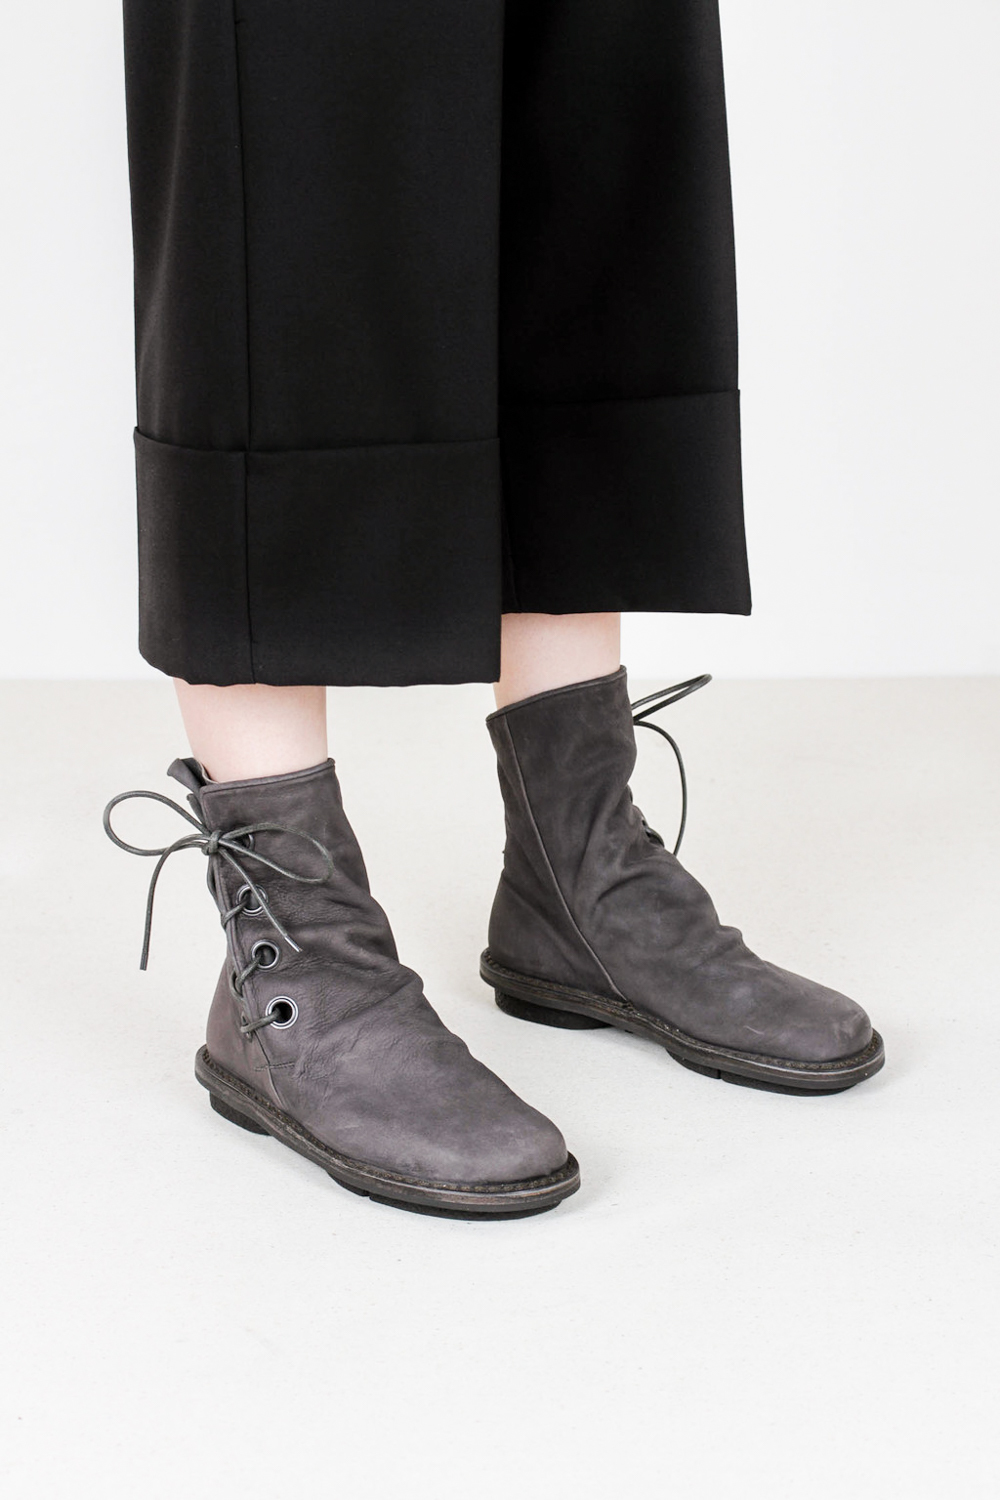 Trippen tramp f tiz grey leather boots